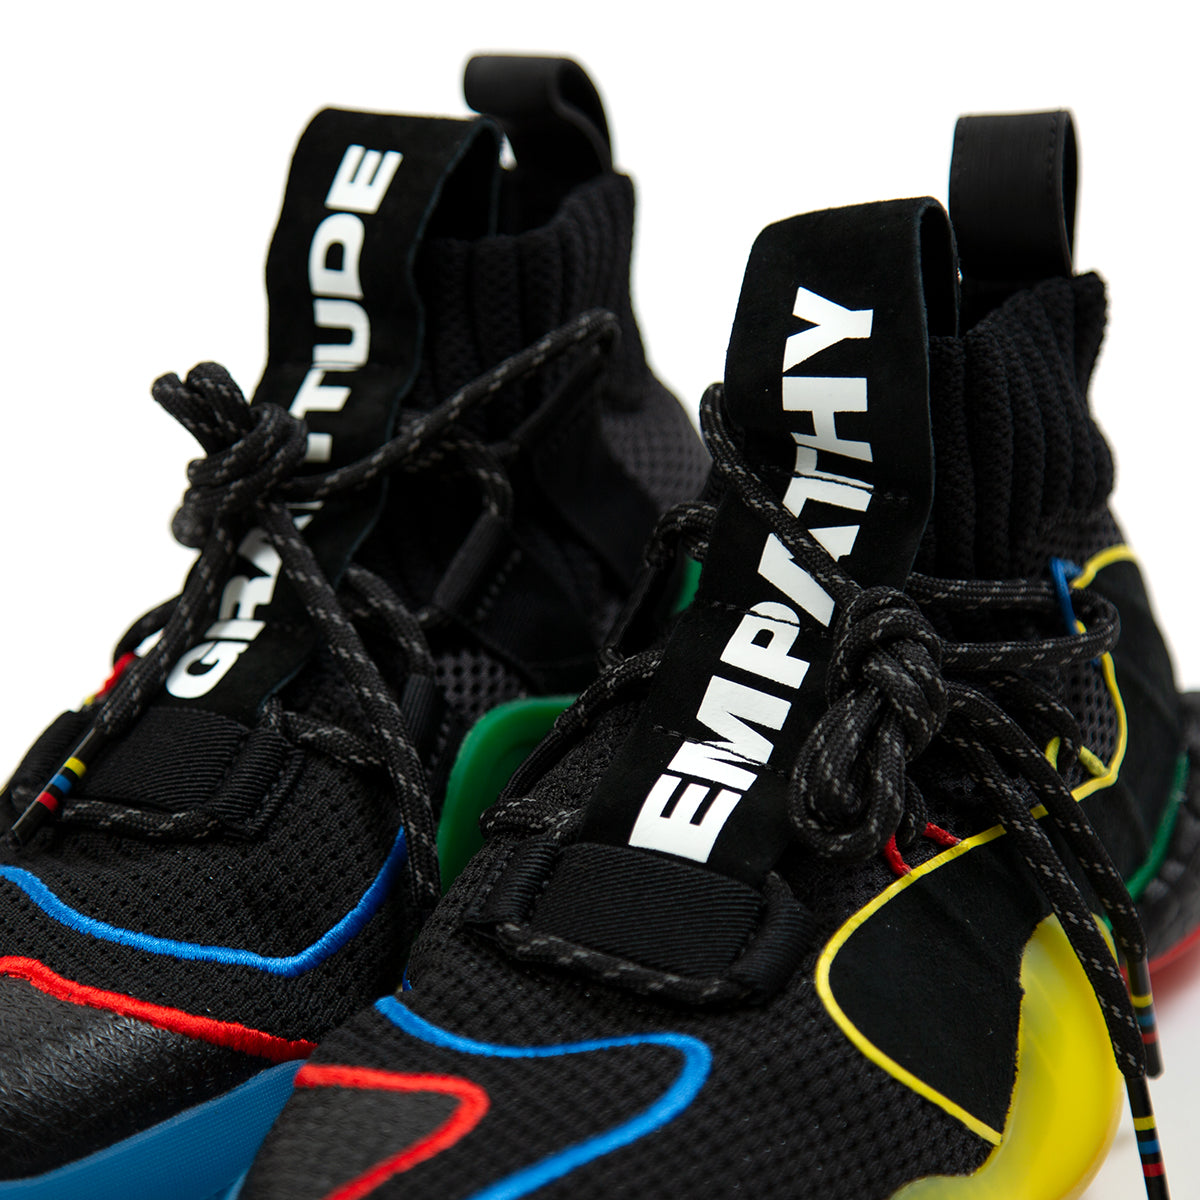 517a355865cf4 adidas X PW Crazy BYW LVL (Core Black Green Red Yellow) G27805